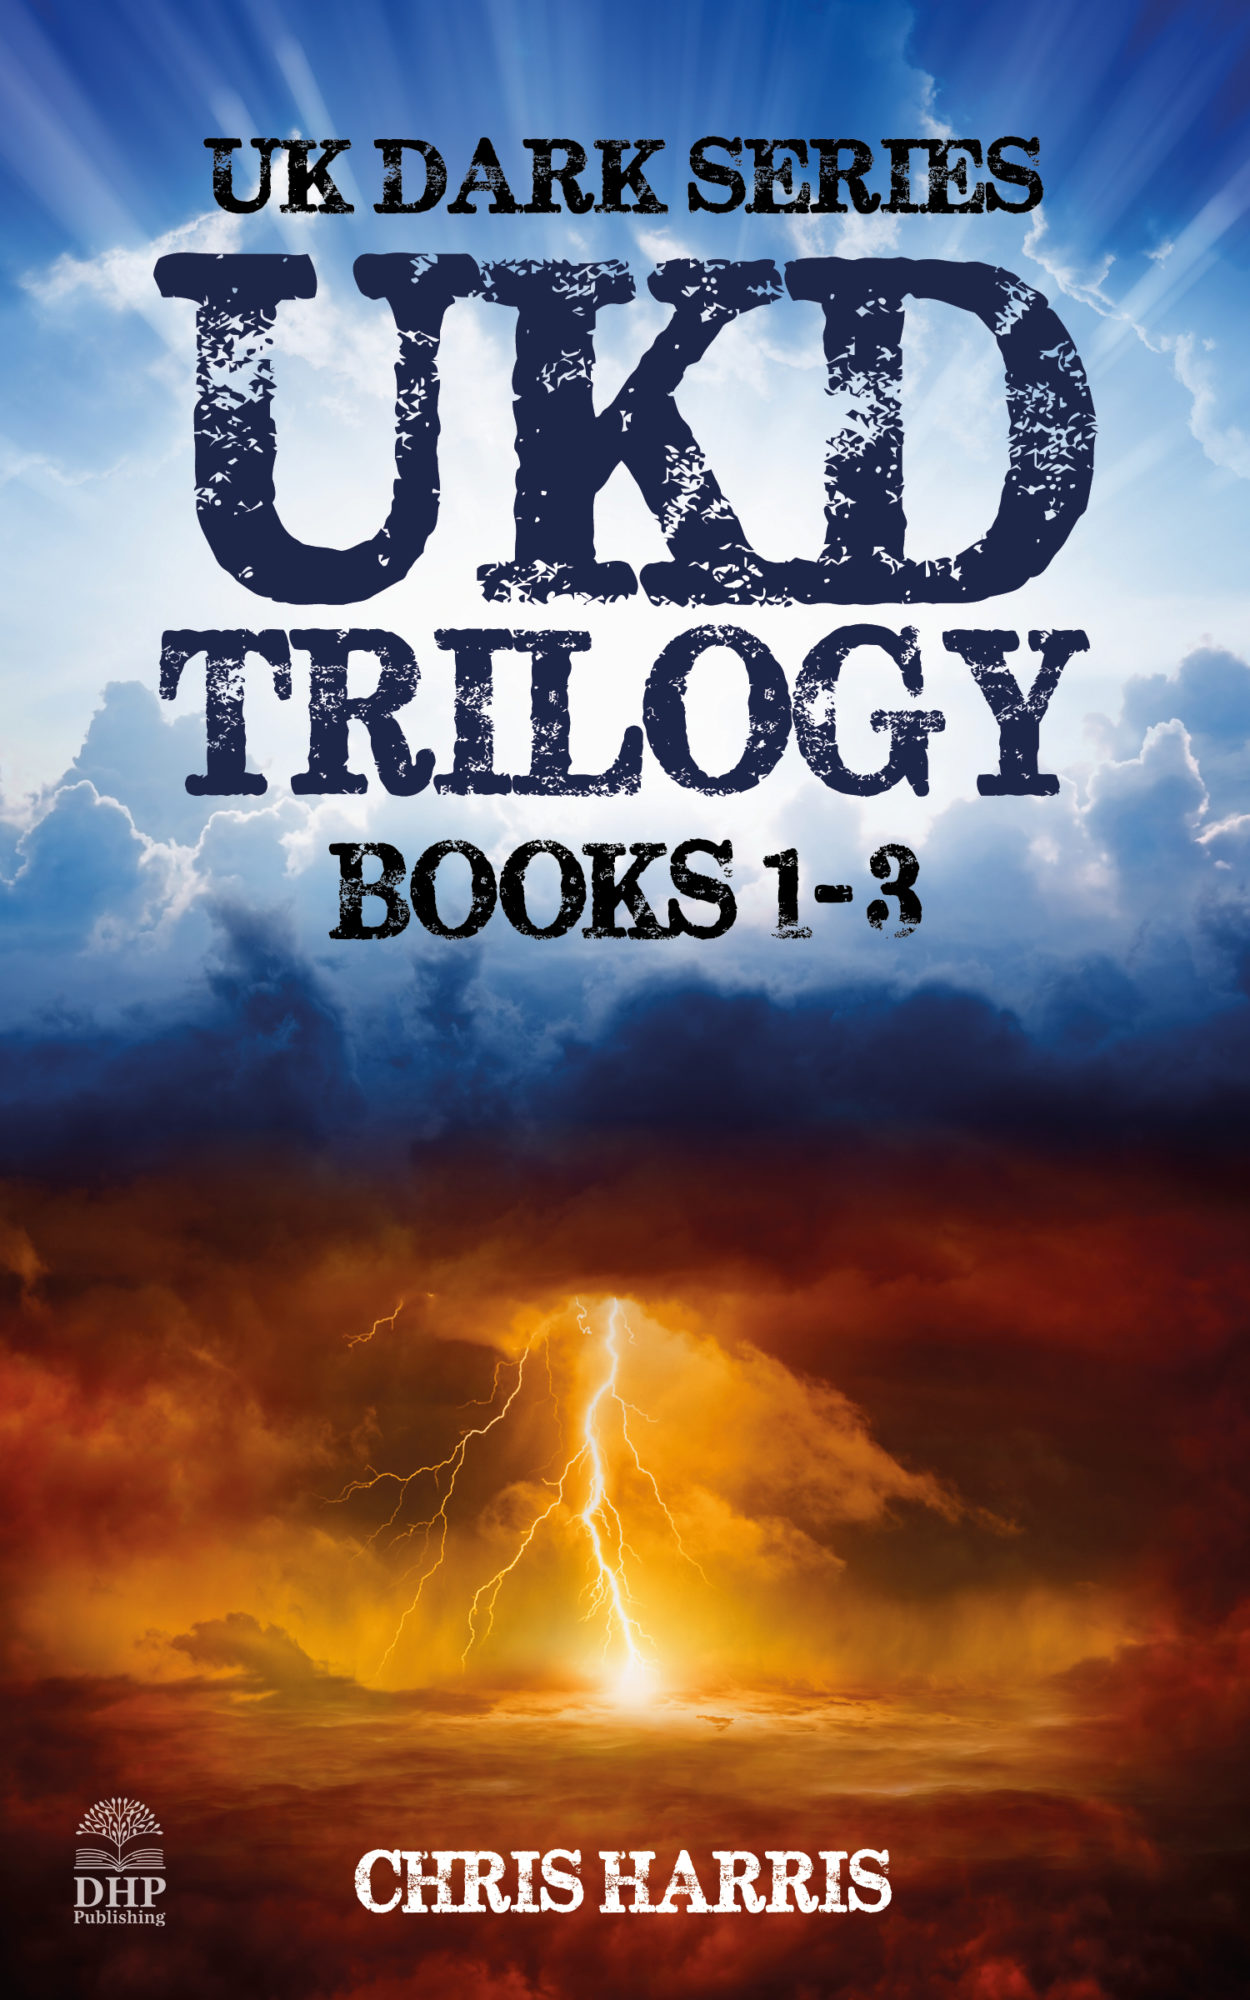 UK Dark Series - Trilogy